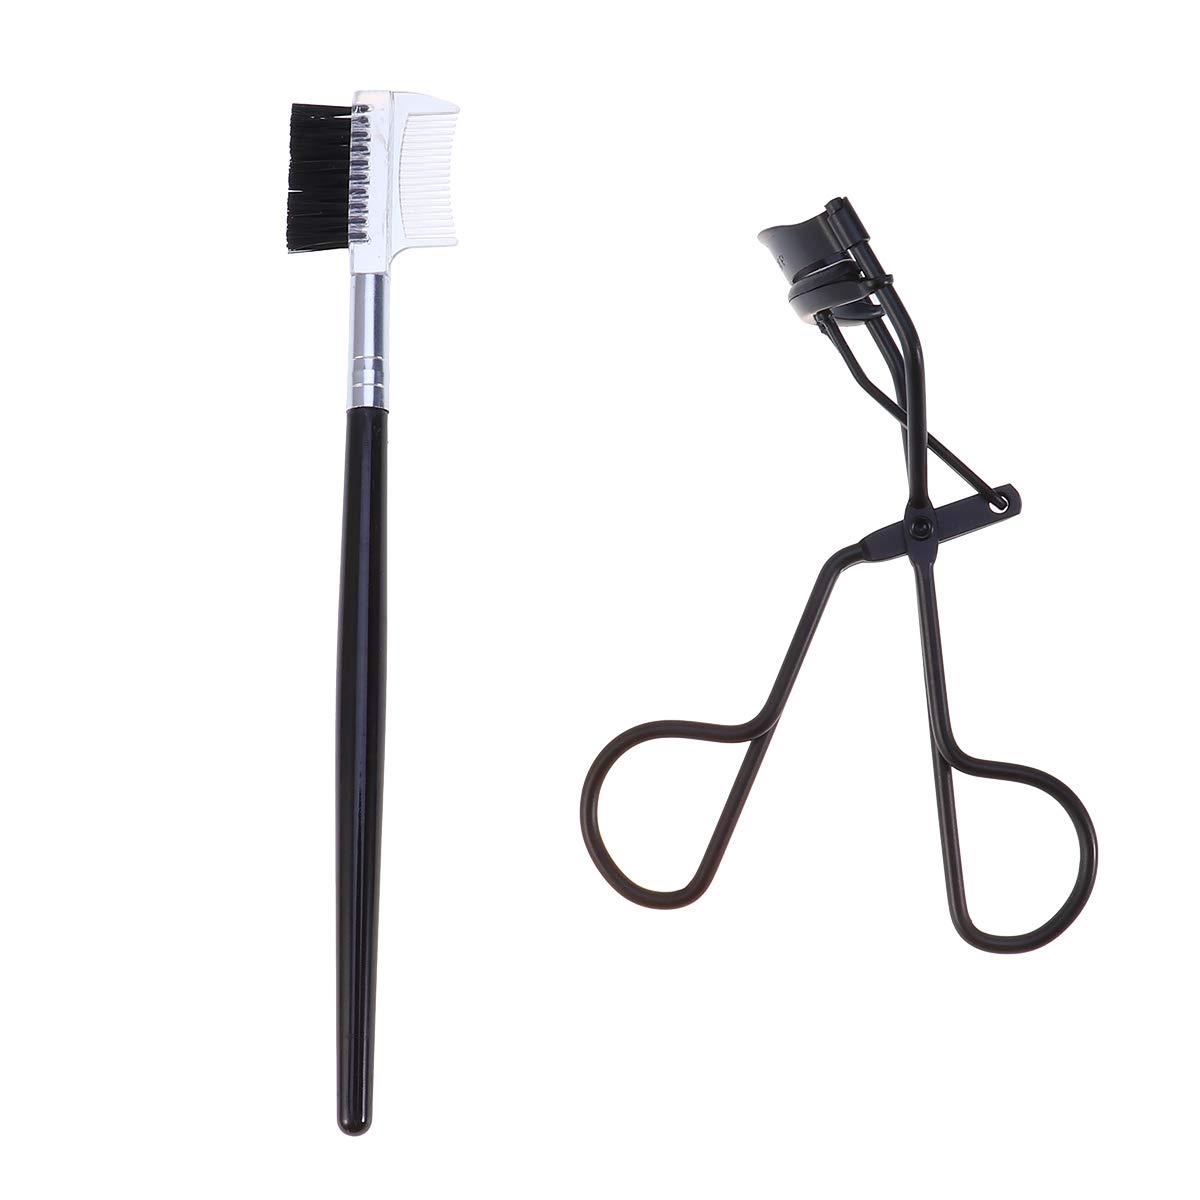 Beaupretty All items free shipping Eyelash Comb Curlers Curling Popularity Silicone Curler